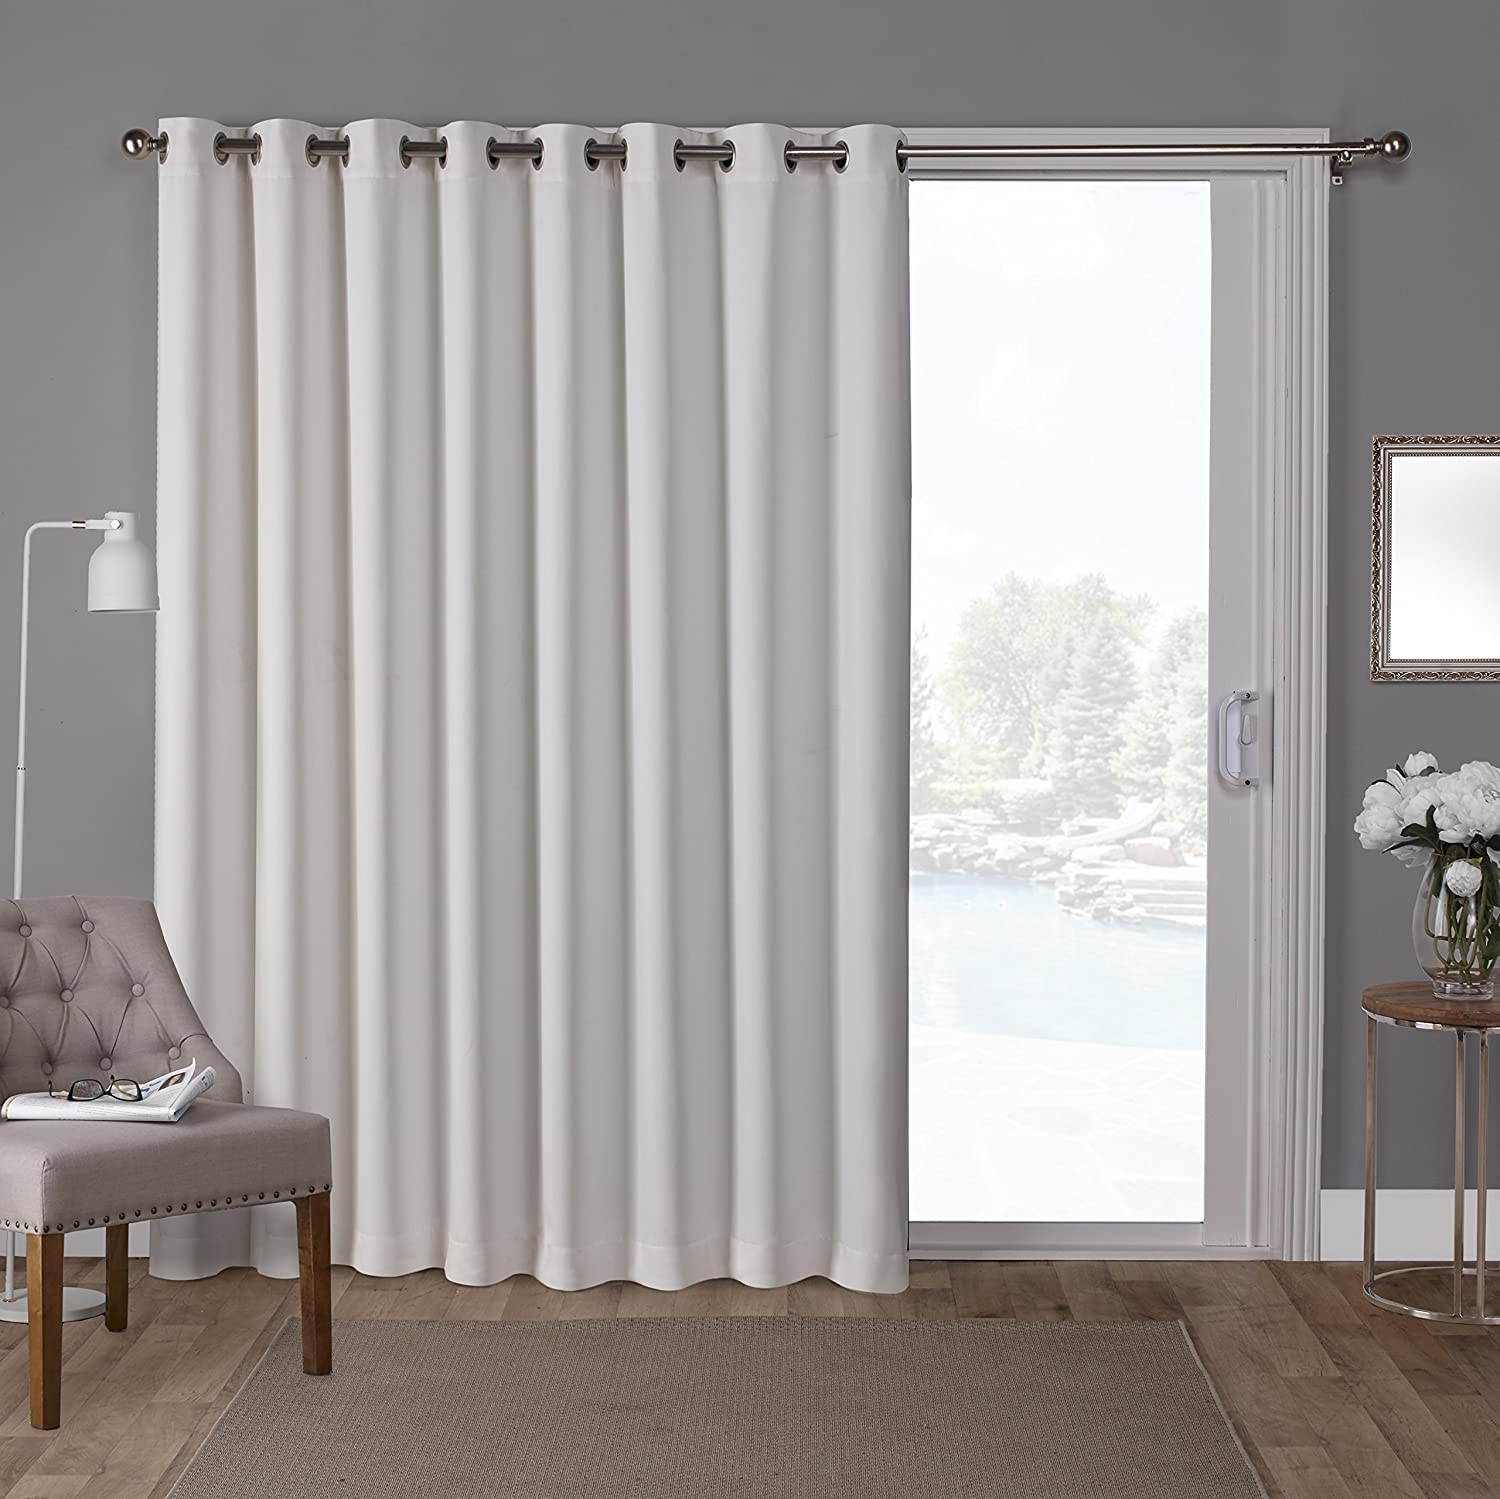 Exclusive Home Curtains Sateen Vanilla 100x84 Twill Woven Blackout Wide Patio Grommet Top Single Curtain Panel